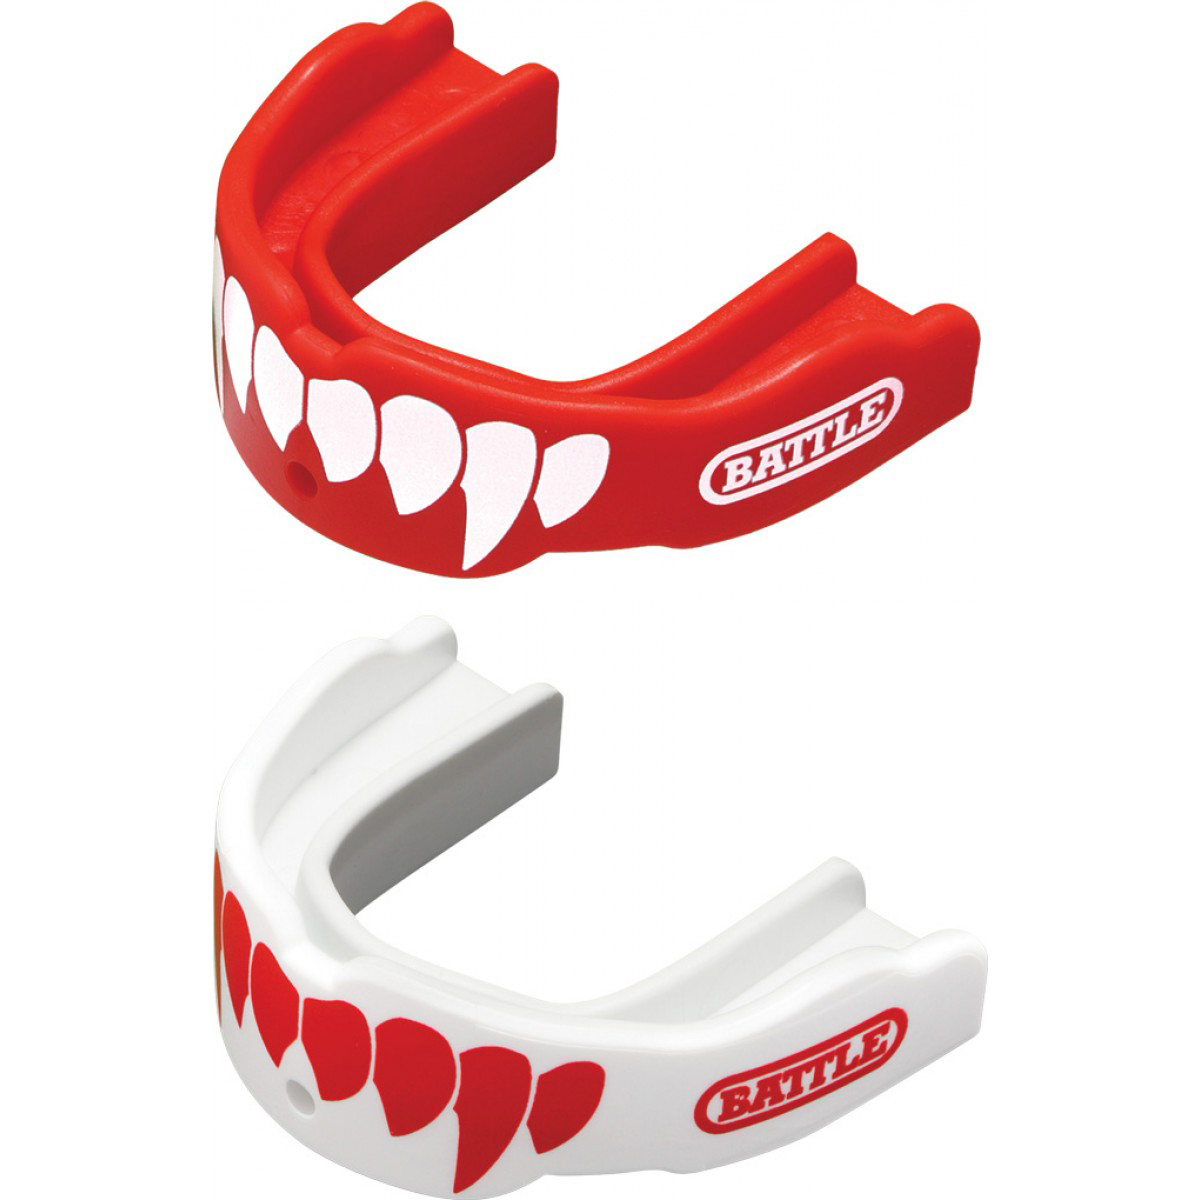 Battle-Sports-Science-Youth-Fang-Mouthguard-2-Pack-with-Straps thumbnail 15